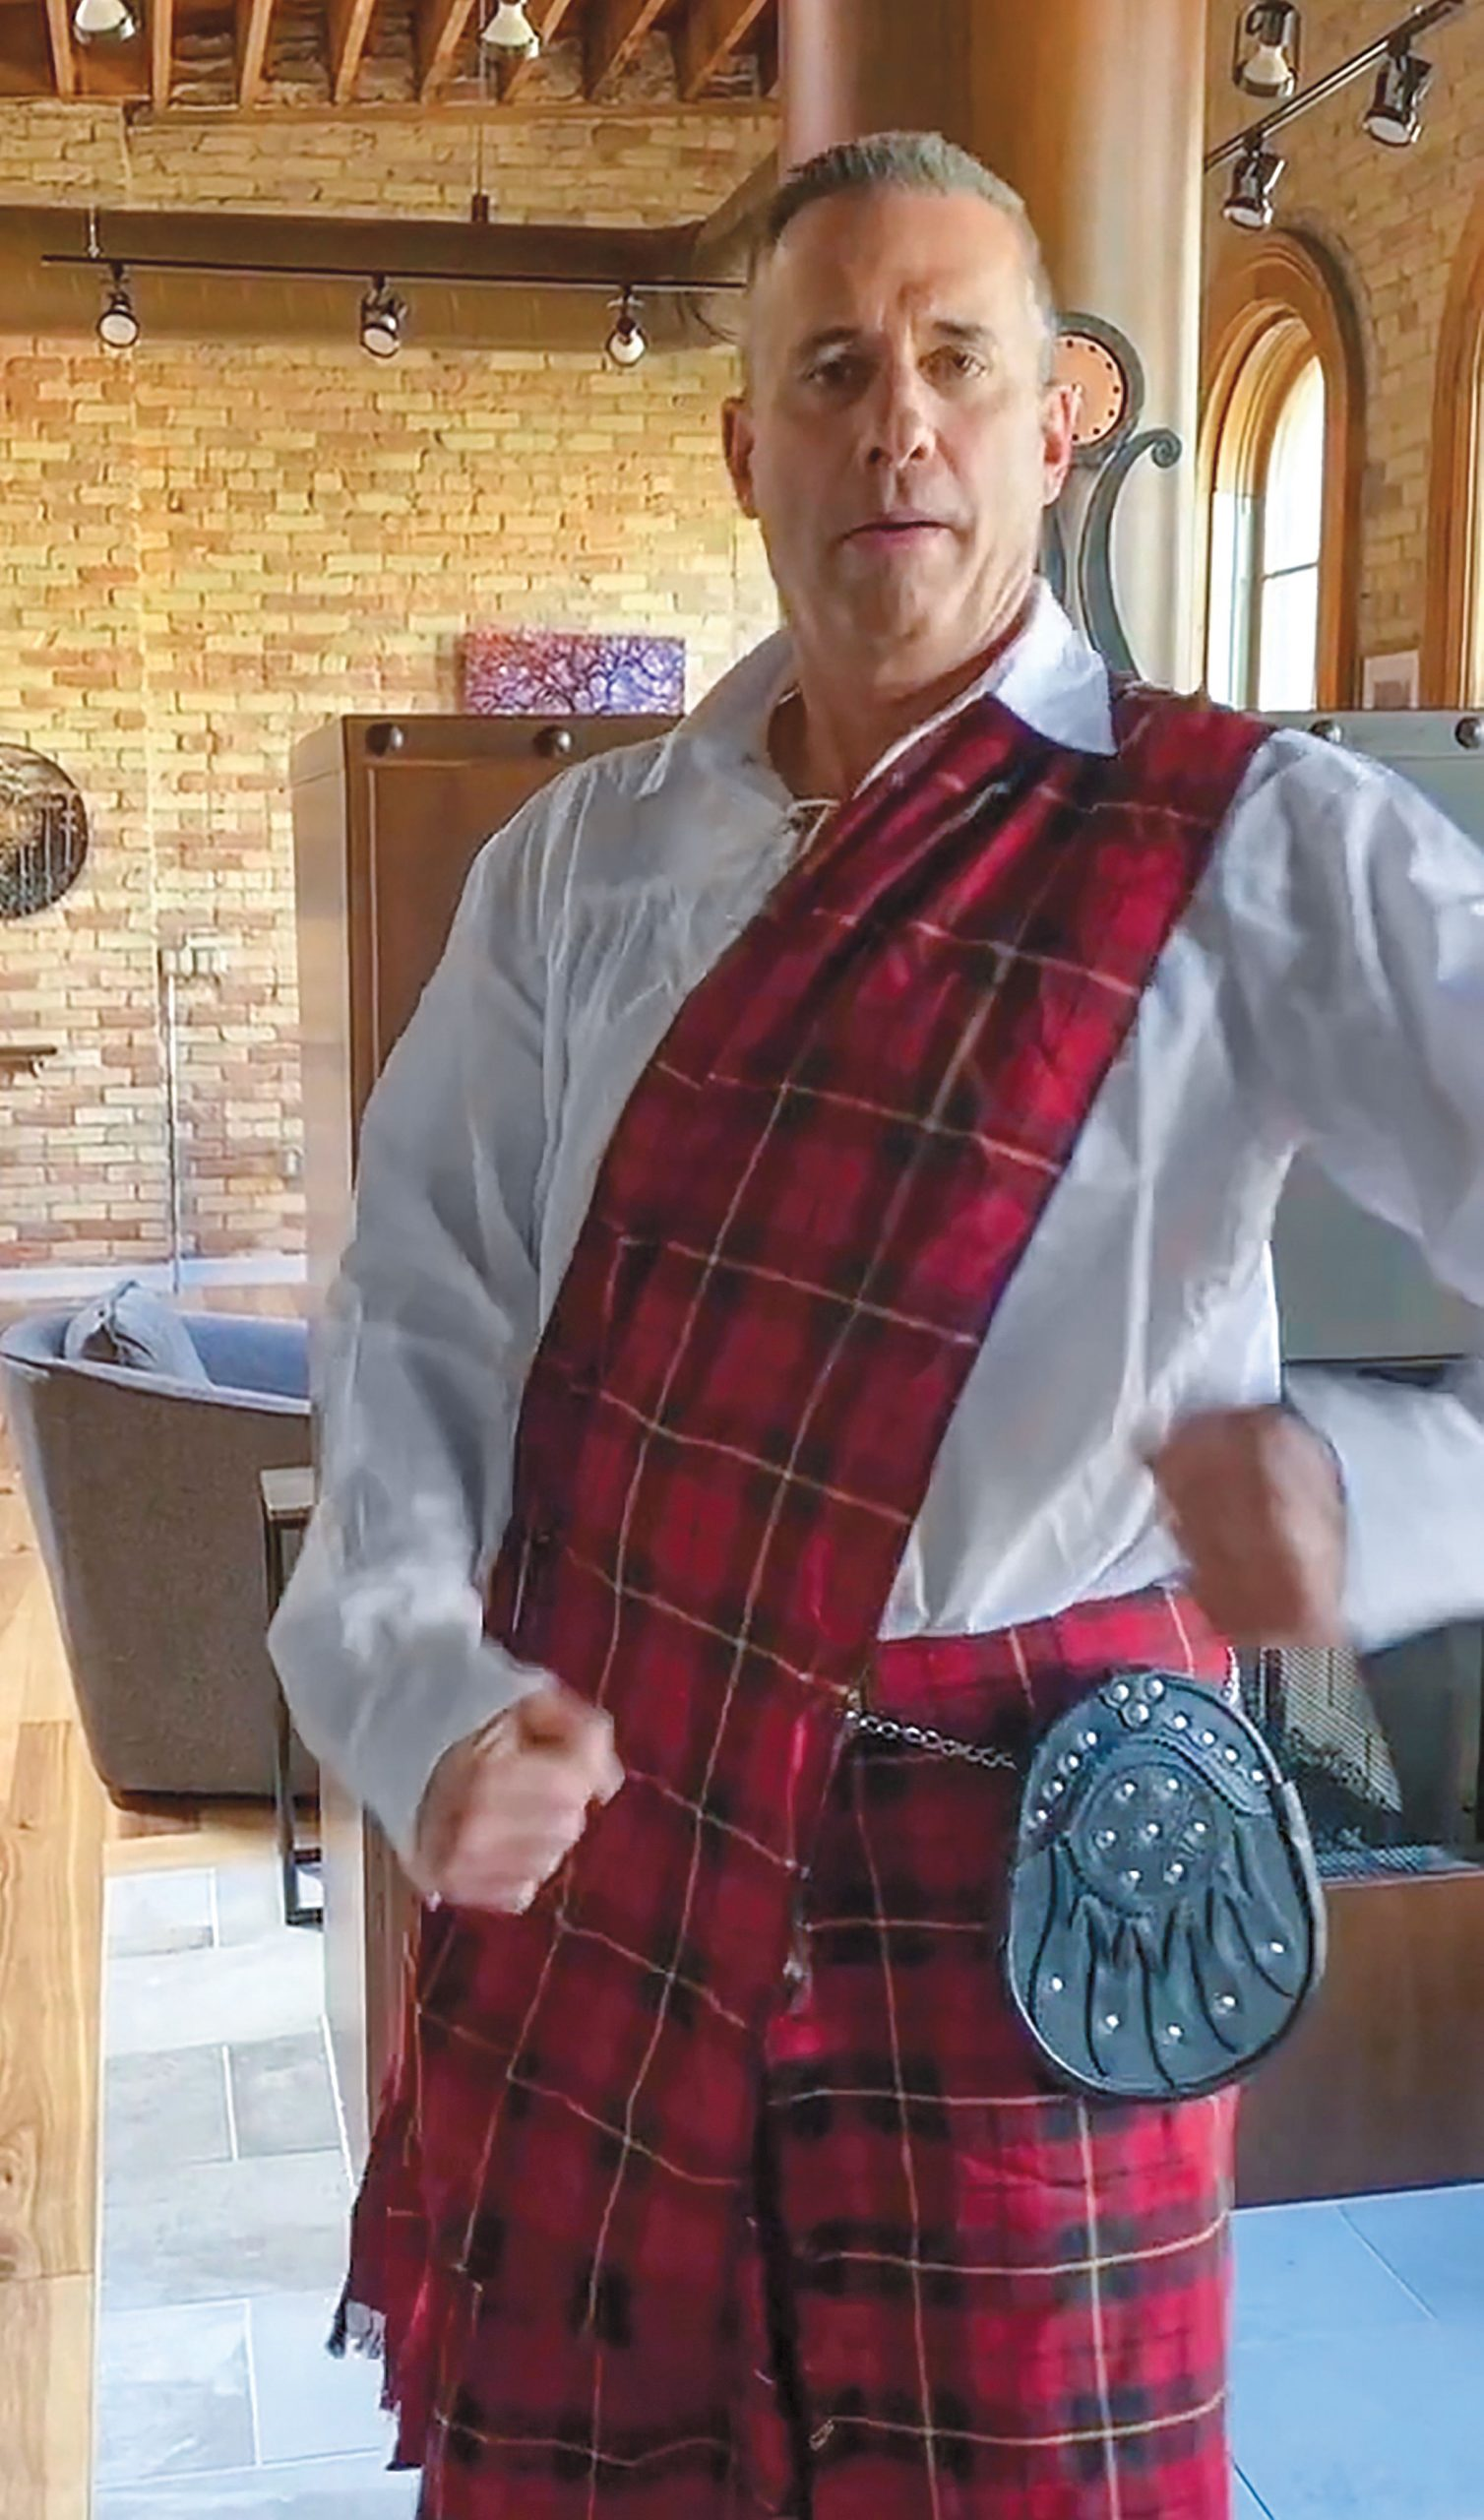 Amway North America Managing Director Jim Ayres honors his Scottish heritage by wearing a kilt for the charity dance competition.